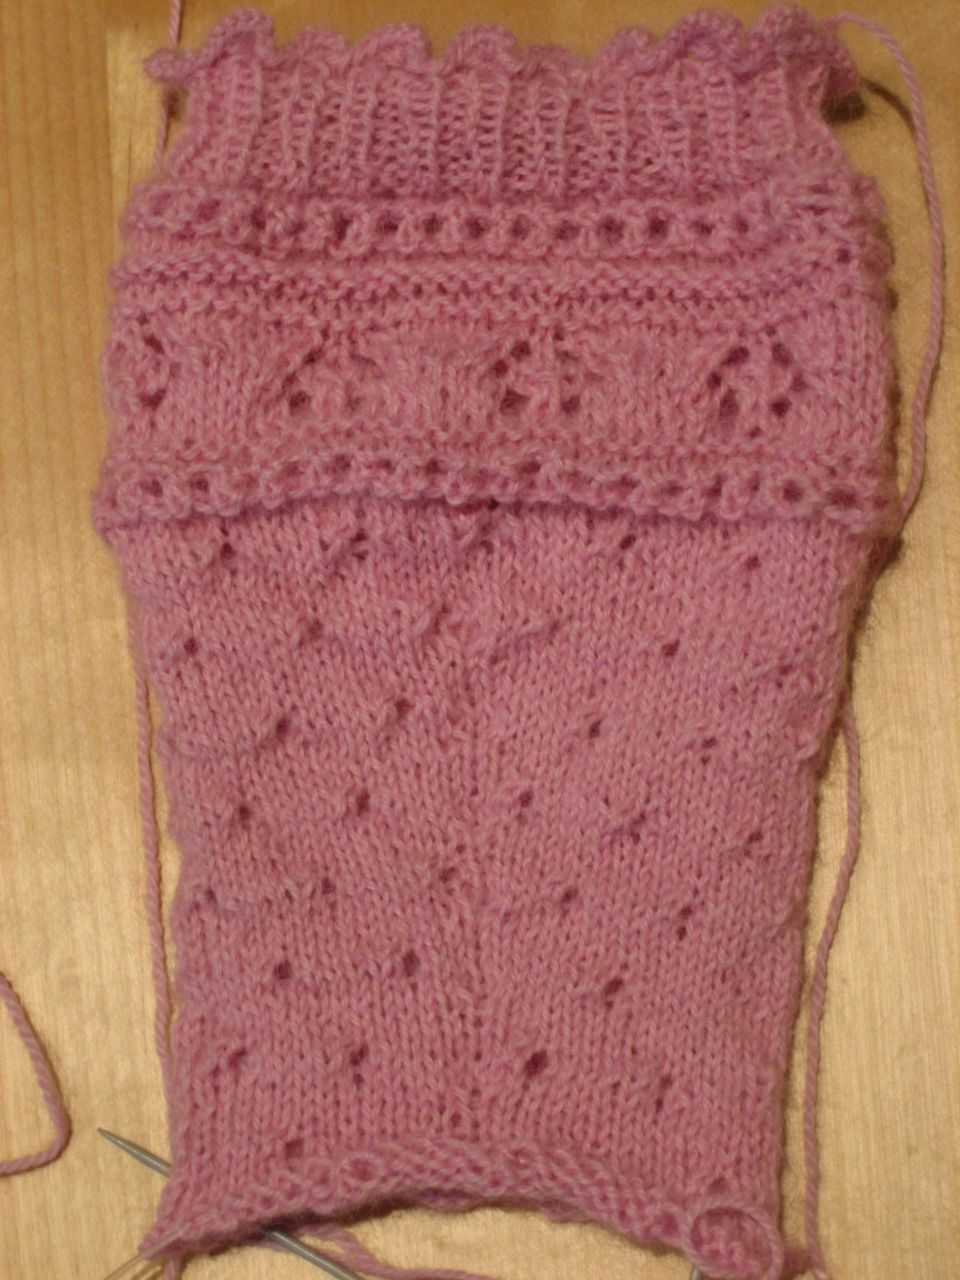 Drop sock progress, back